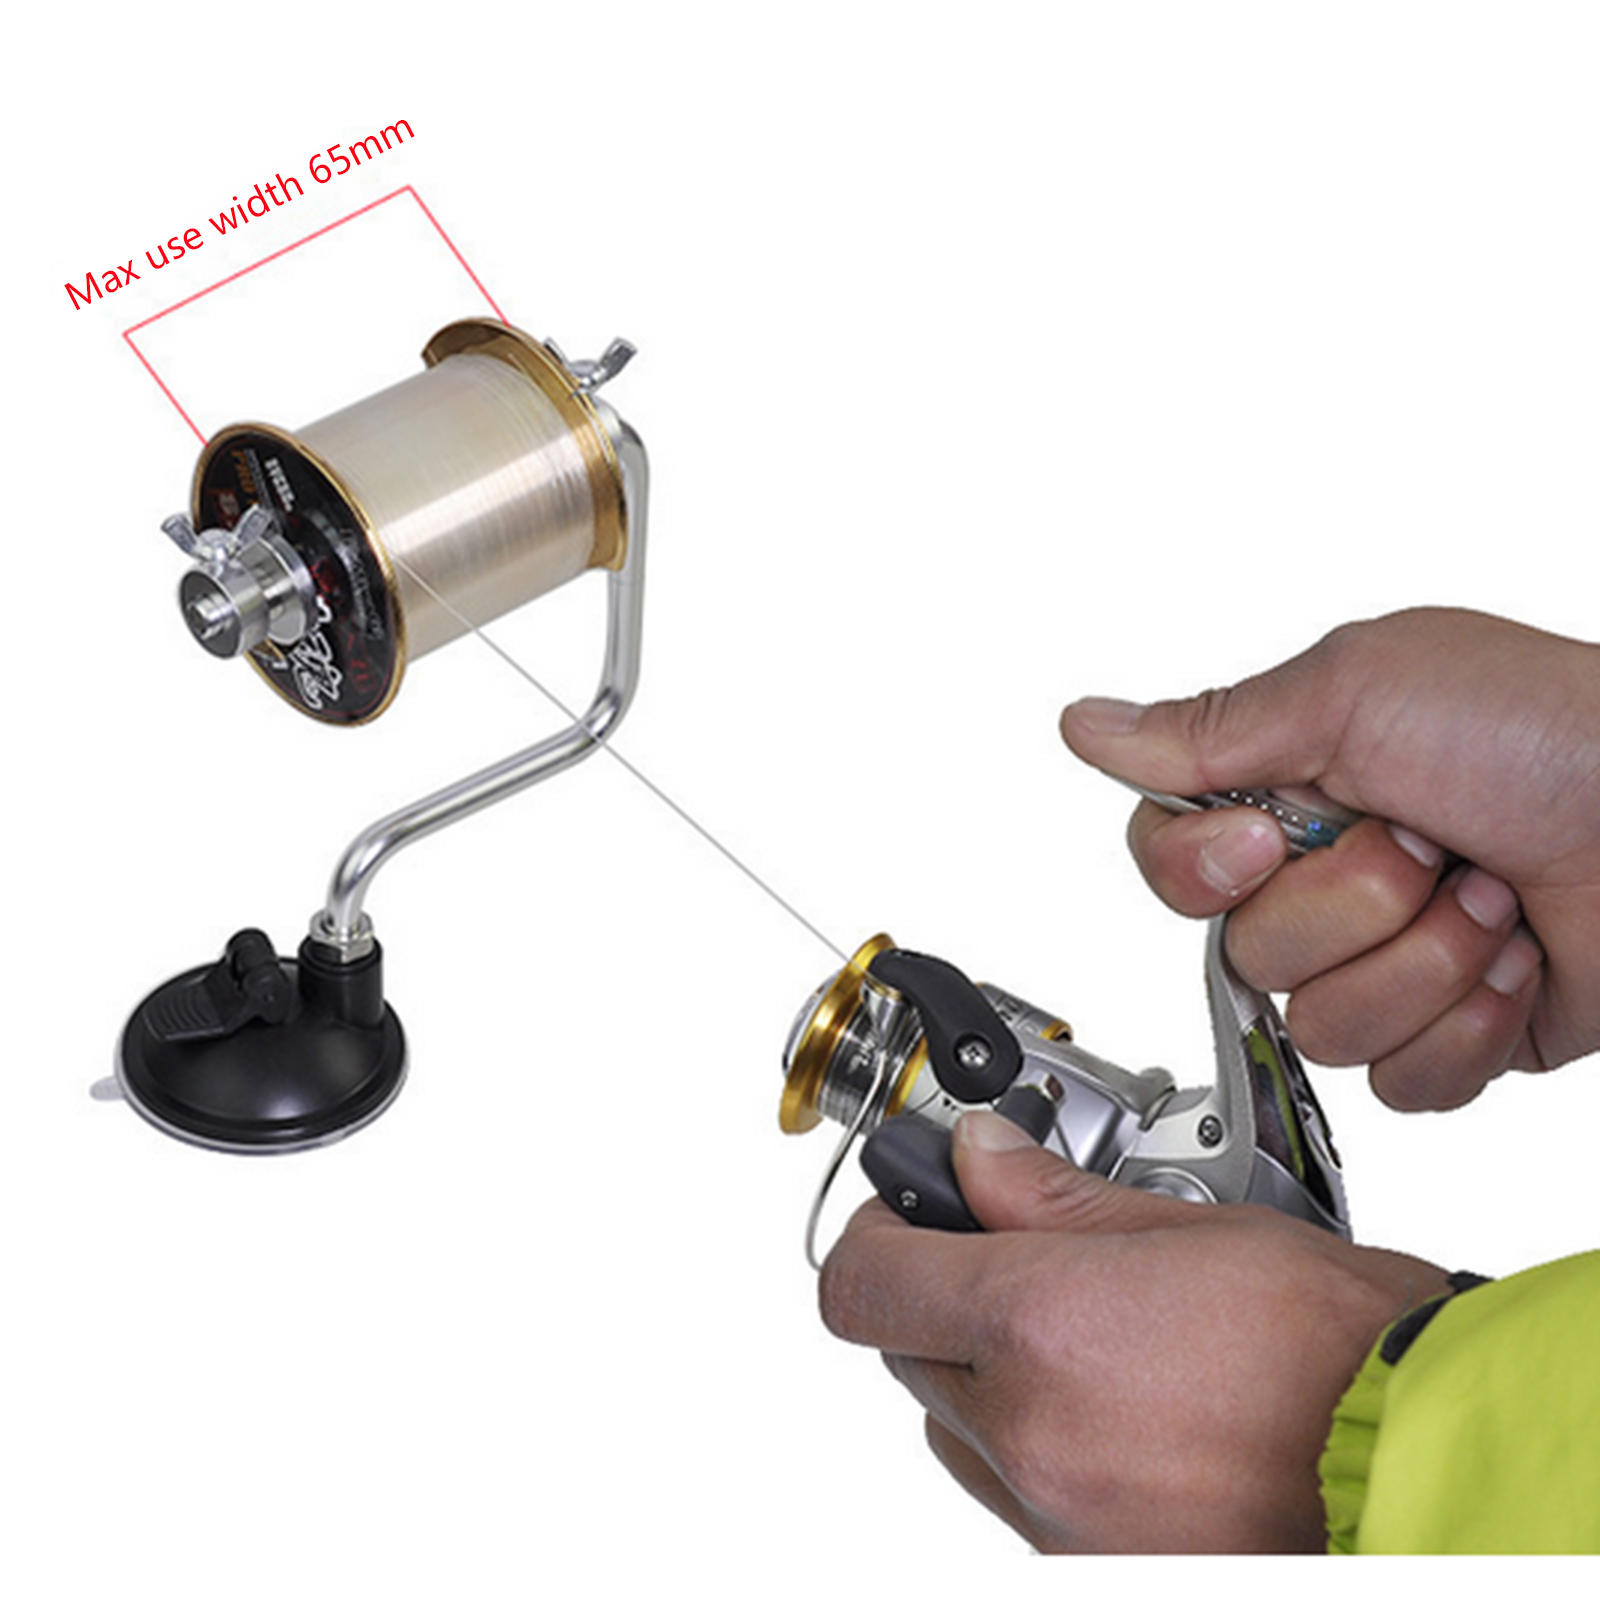 2019 Newest Fishing Line Winder Reel Line Spooler Spooling Winding System Tackle(China)